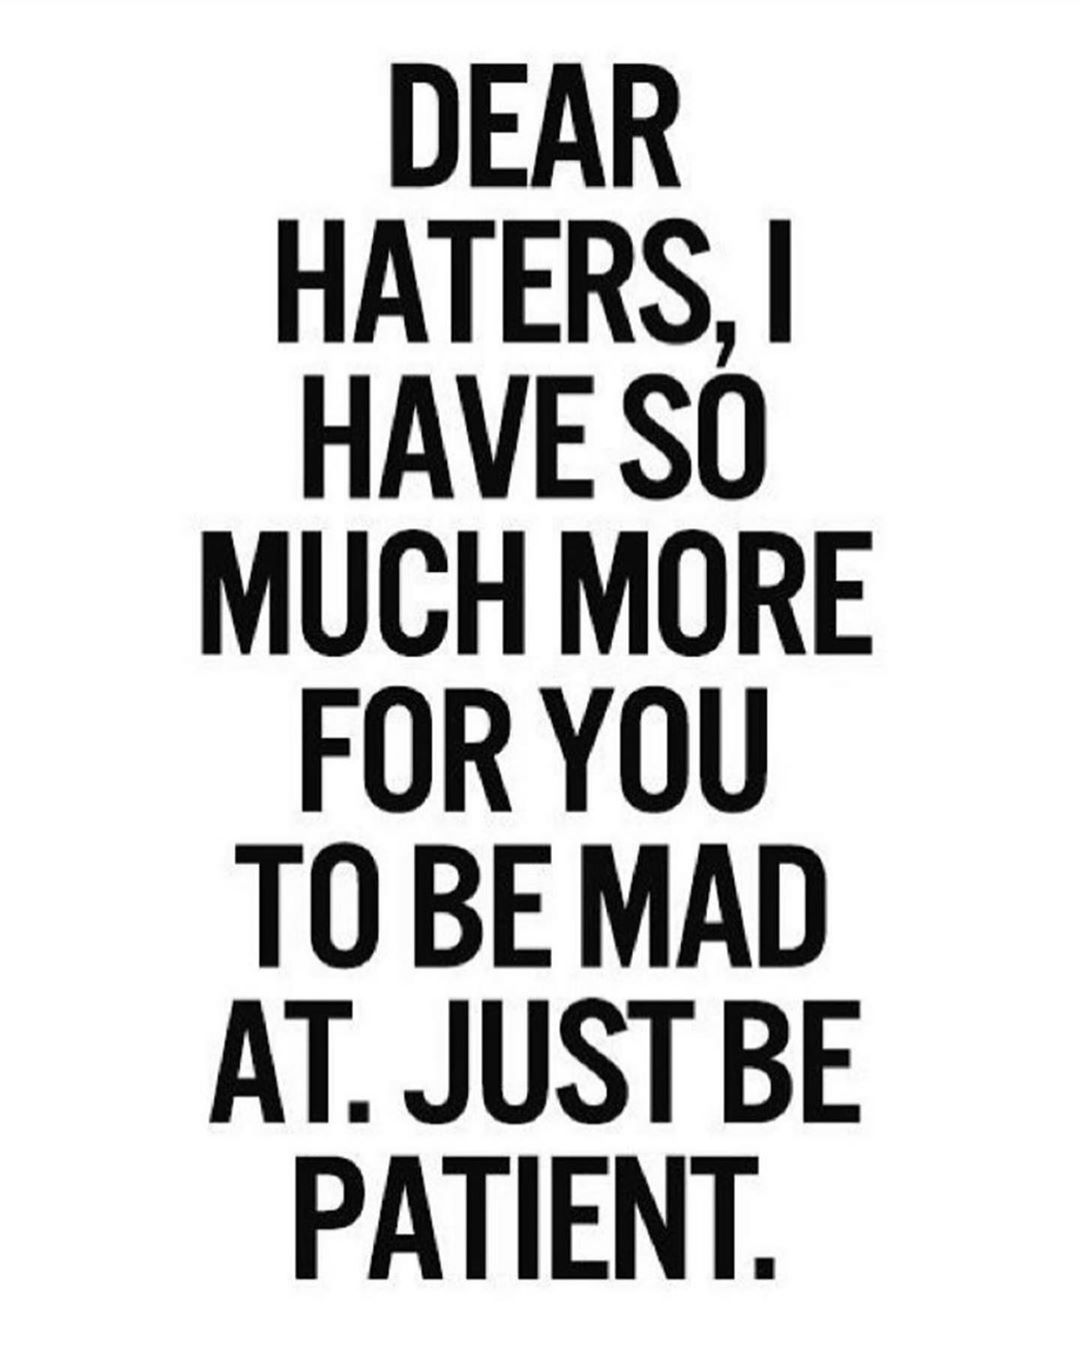 Dear haters, there's SO much more in store for you - Layzie Bone